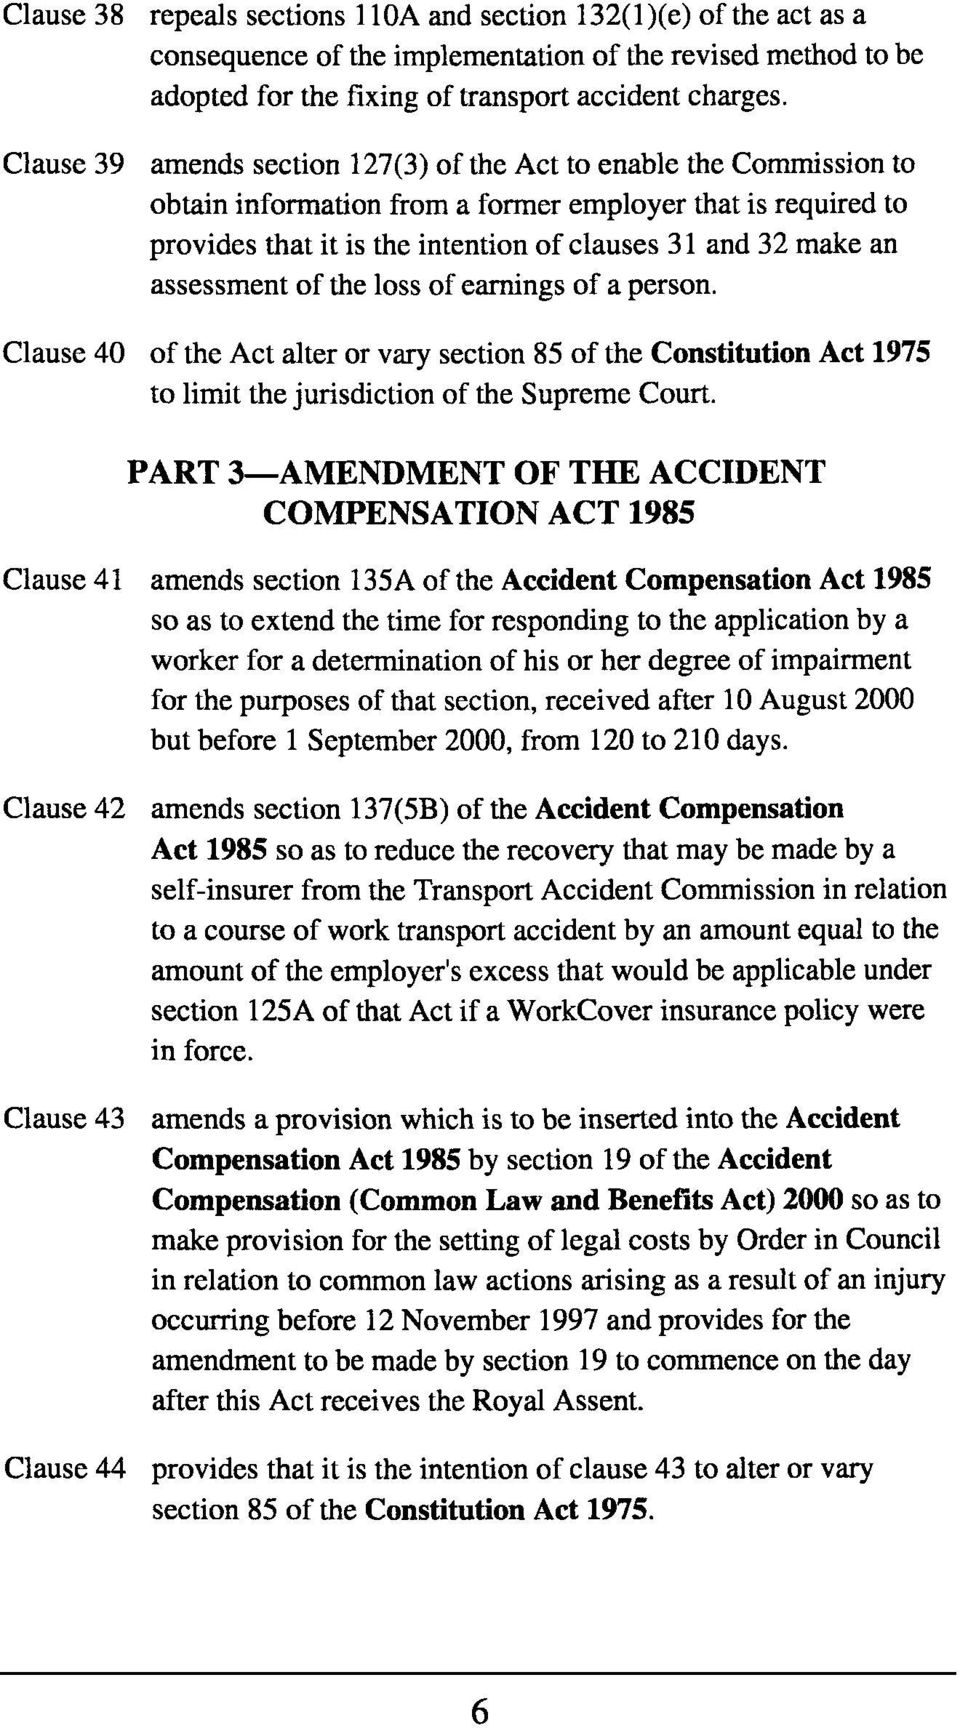 assessment of the loss of earnings of a person. Clause 40 of the Act alter or vary section 85 of the Constitution Act 1975 to limit the jurisdiction of the Supreme Court.